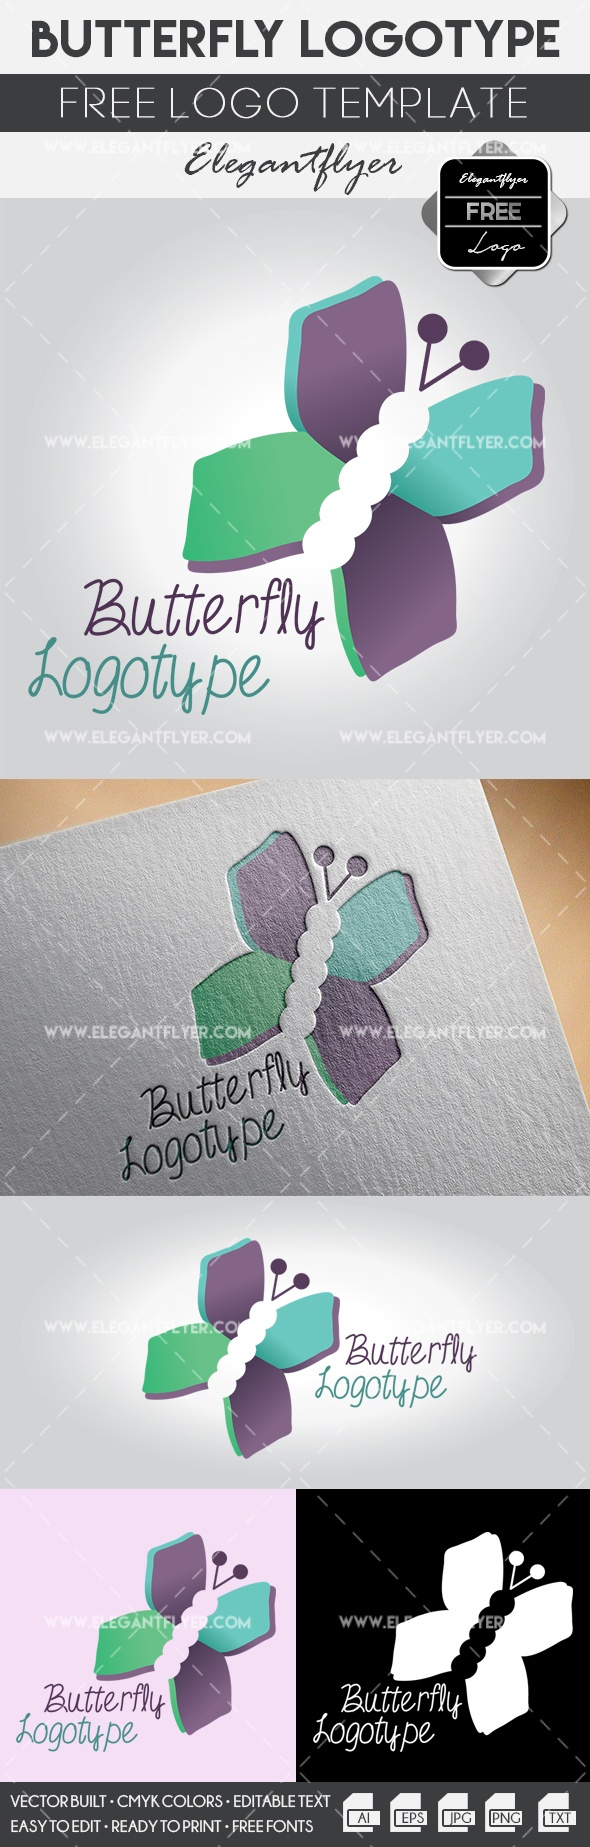 Butterfly – Free Logo Templates